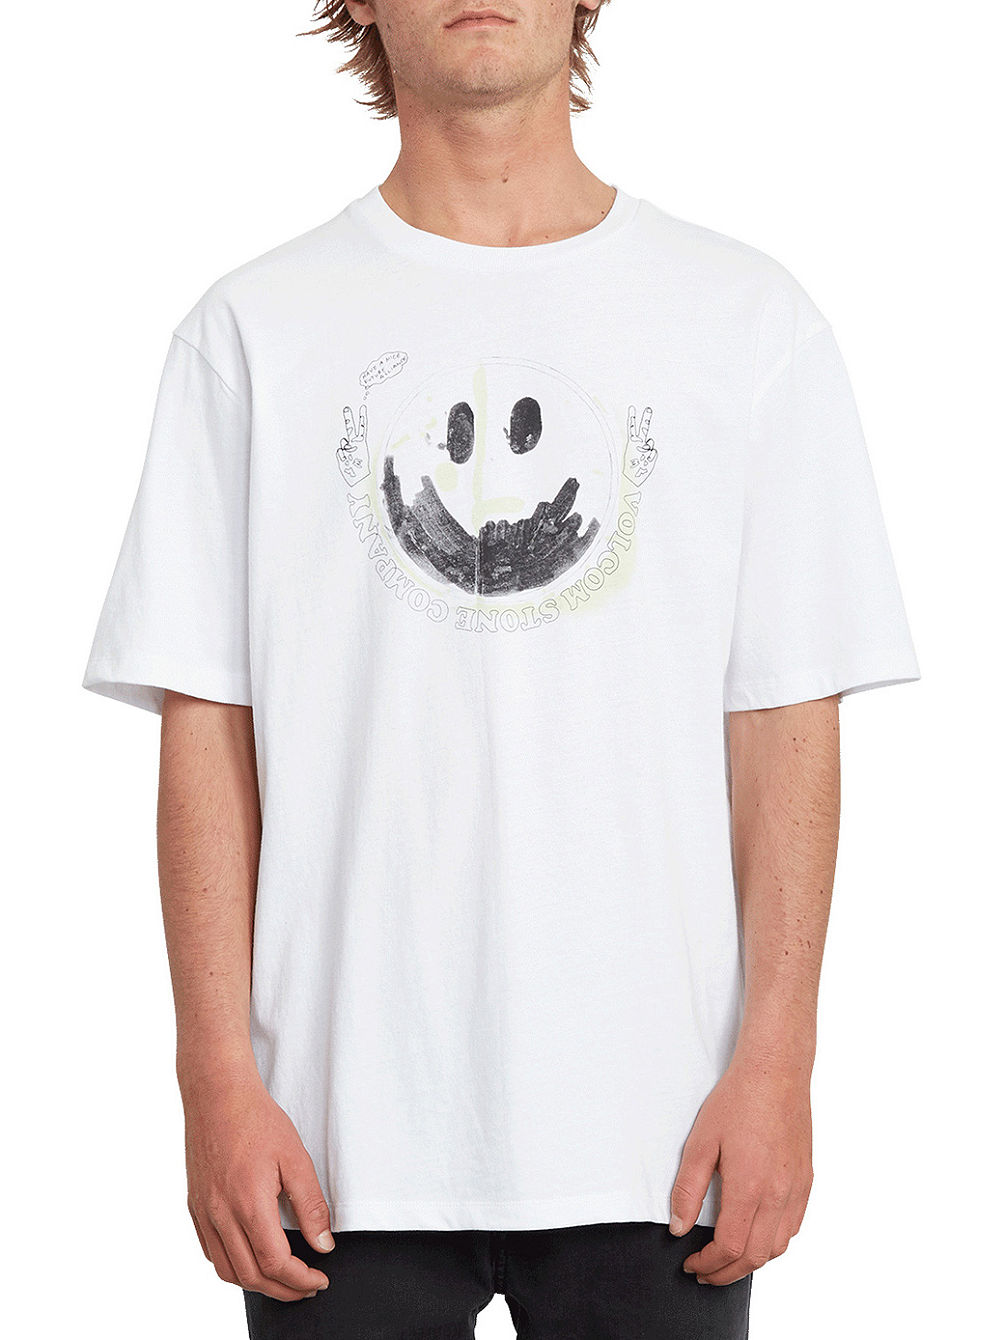 Fake Smile Bxy T-Shirt